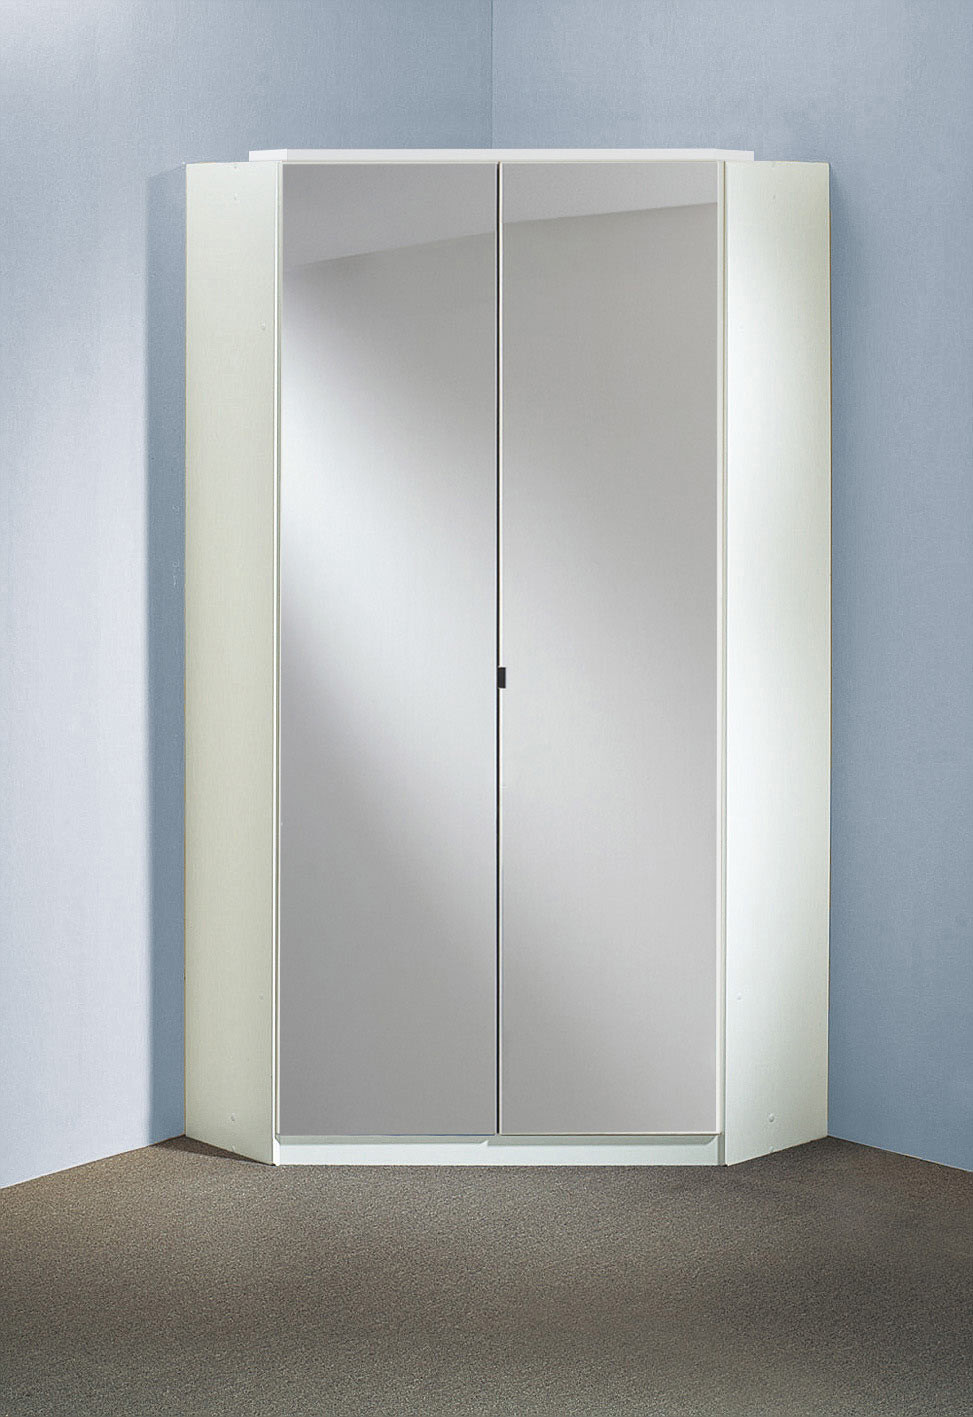 Armoire d'angle contemporaine Telma I